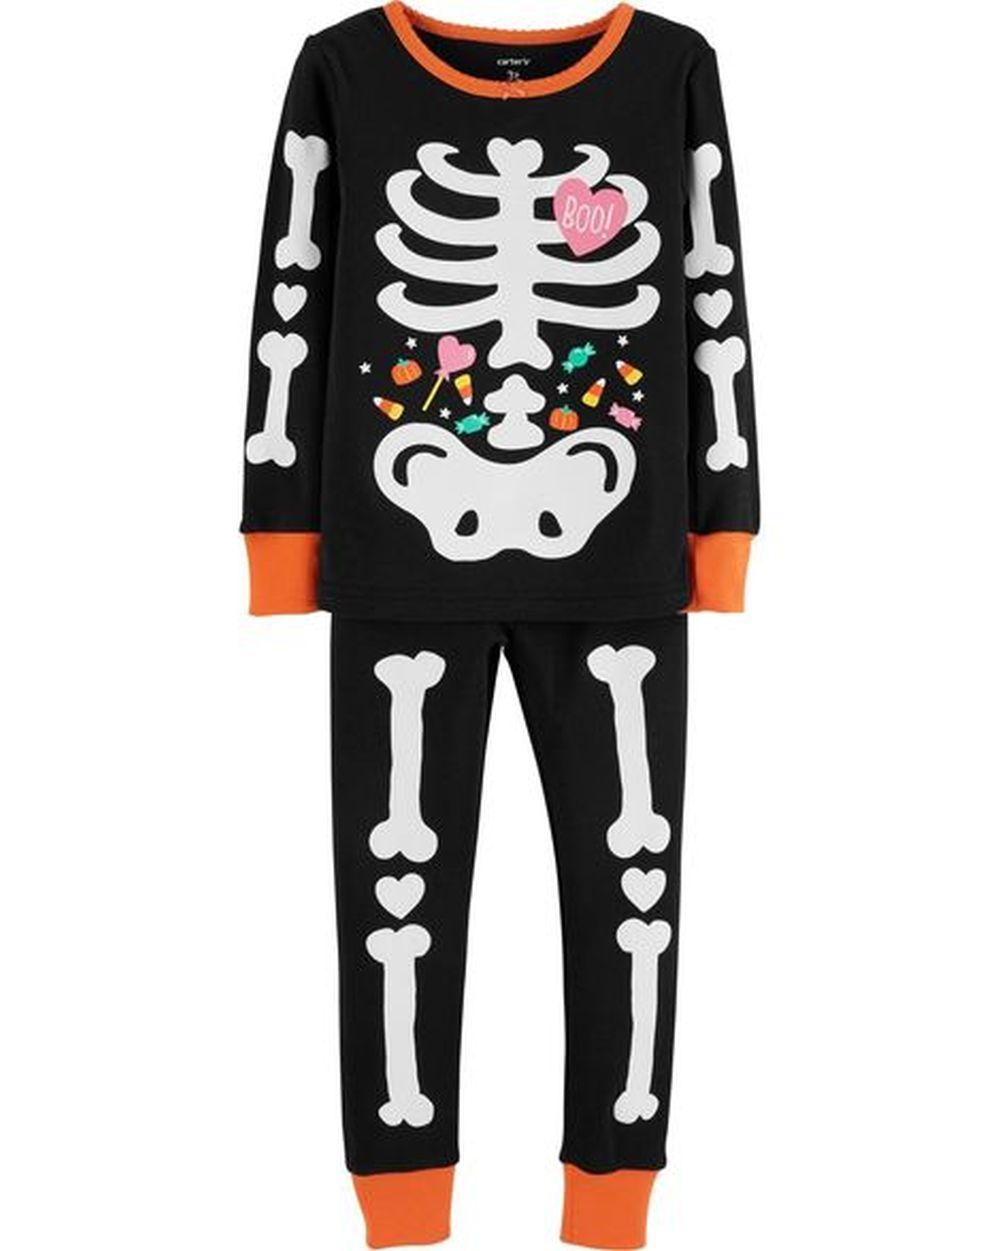 7eae43edda6d Sleepwear 99735  New Carter S Girls Halloween Glow In Dark Skeleton ...